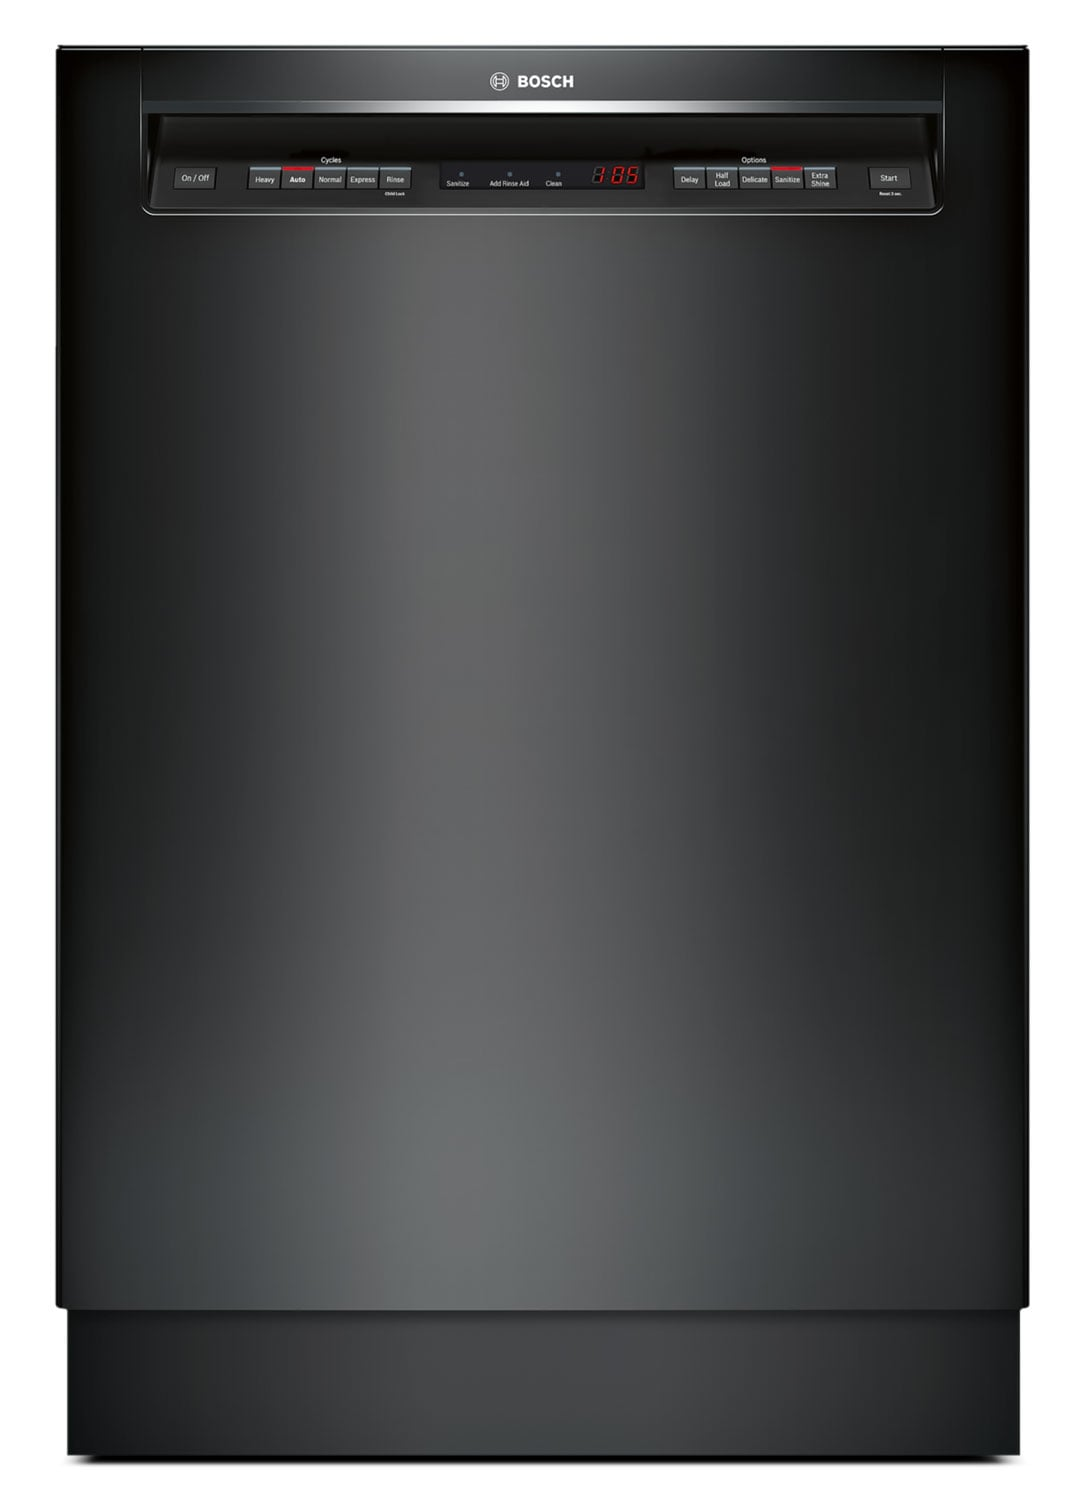 "Clean-Up - Bosch 500 Series 24"" Recessed Handle Dishwasher - Black"